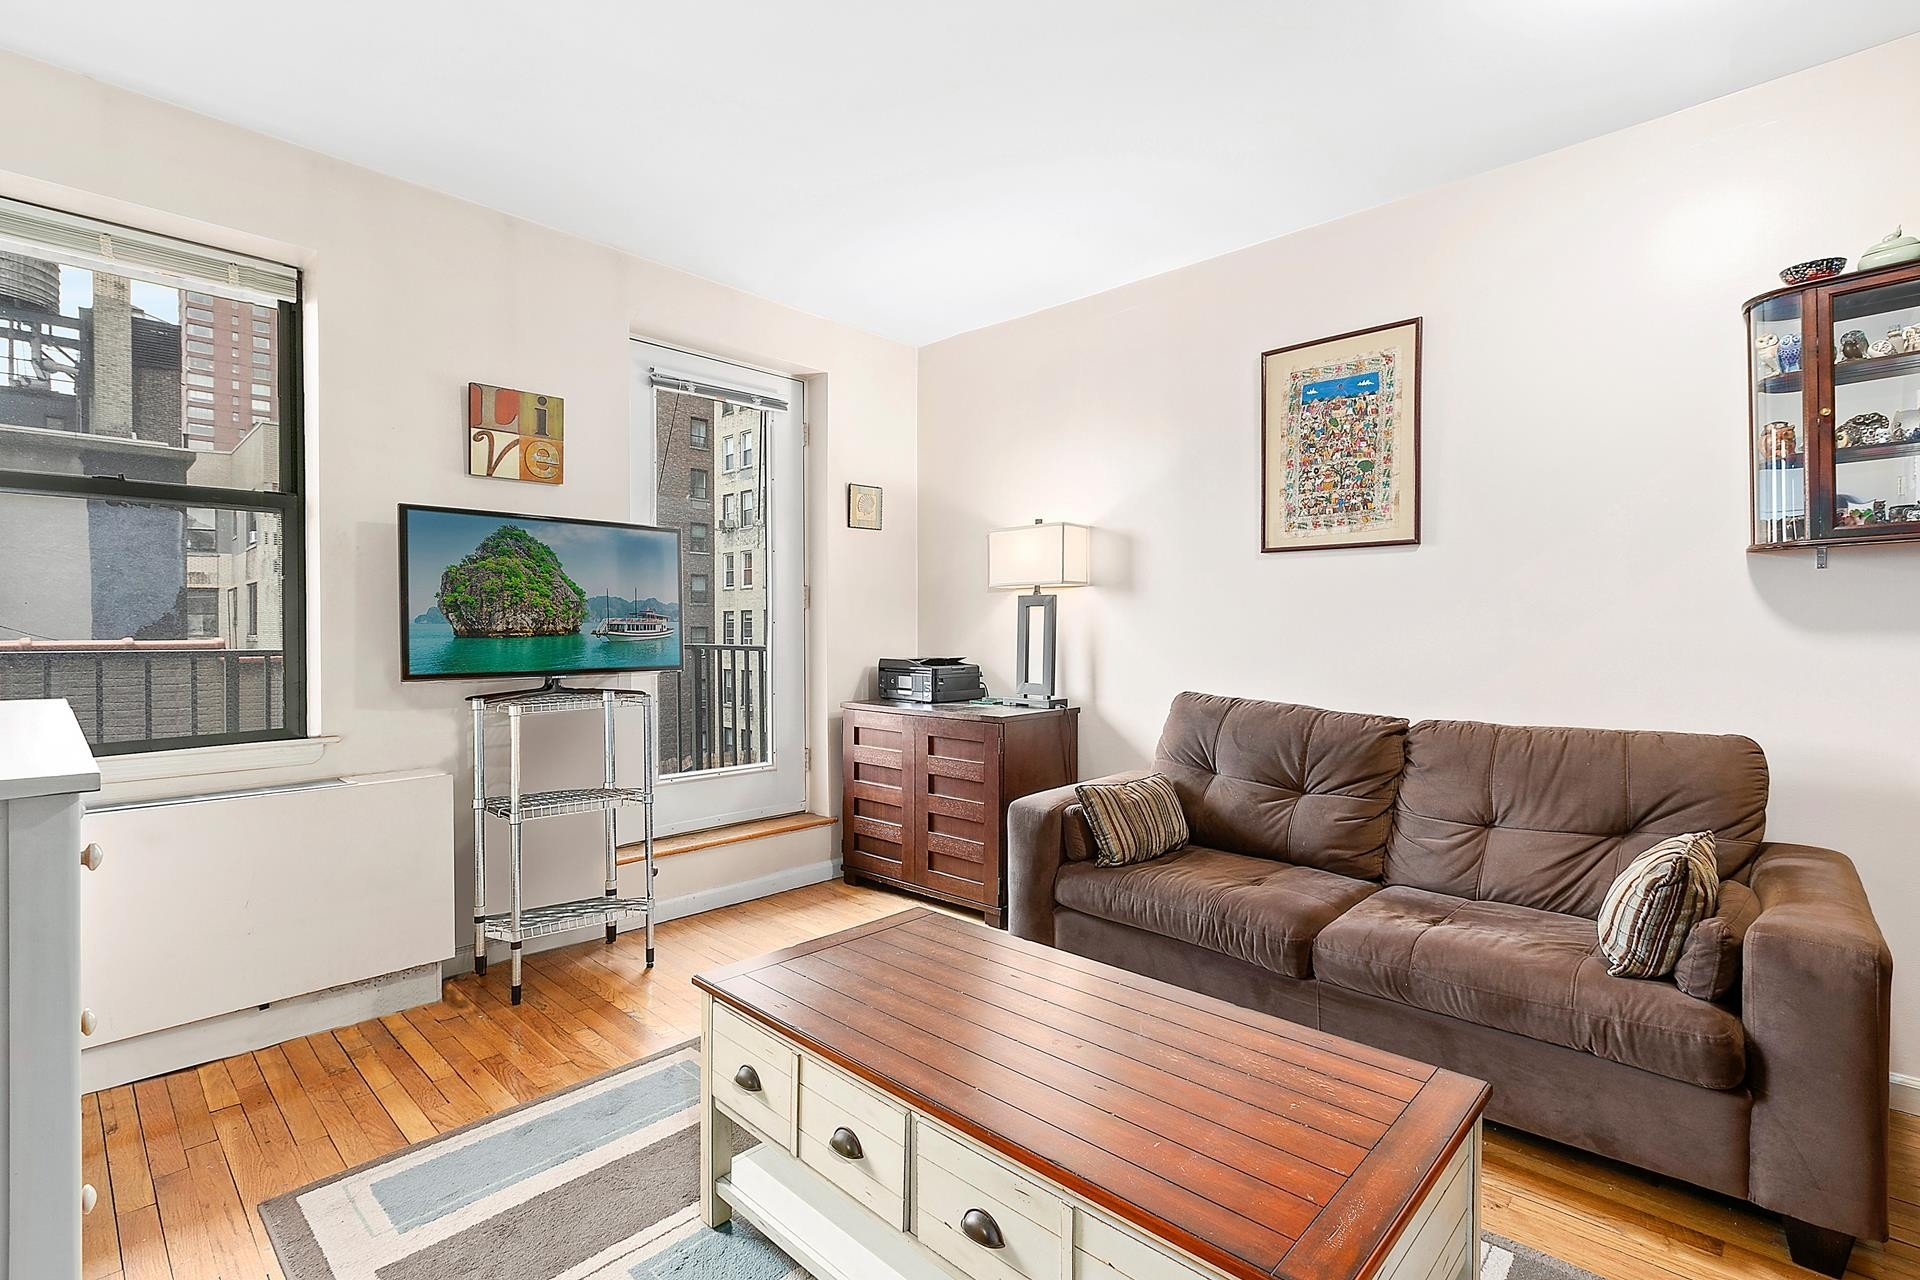 Property en 186 West 80th St, 7M Upper West Side, New York, NY 10024